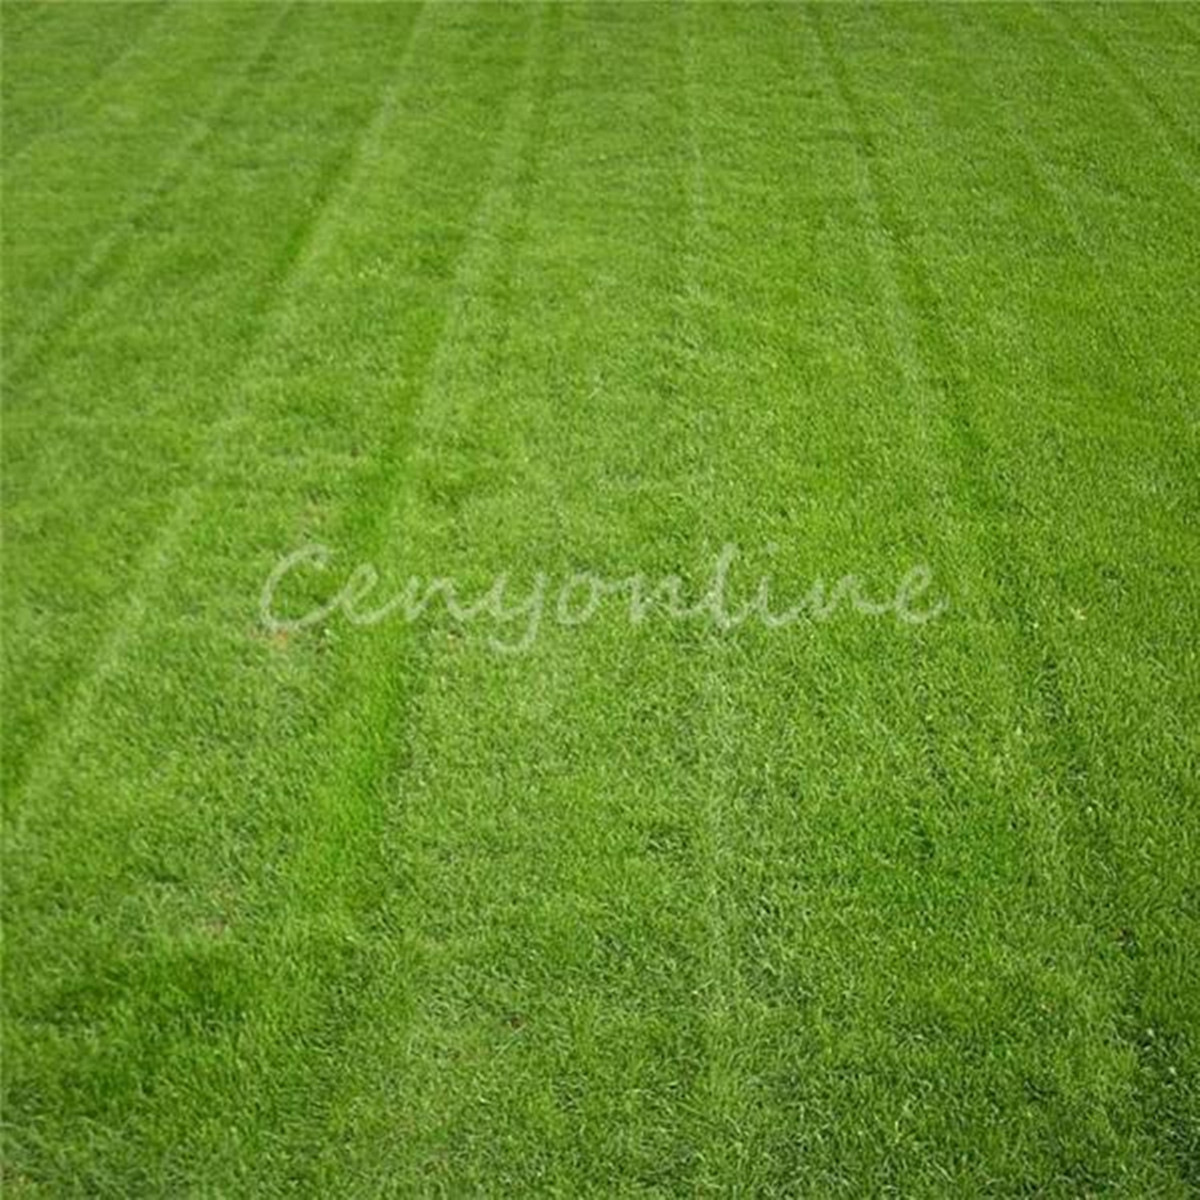 10000x tall fescue grass seeds festuca arundinacea lawn for Tall outdoor grasses